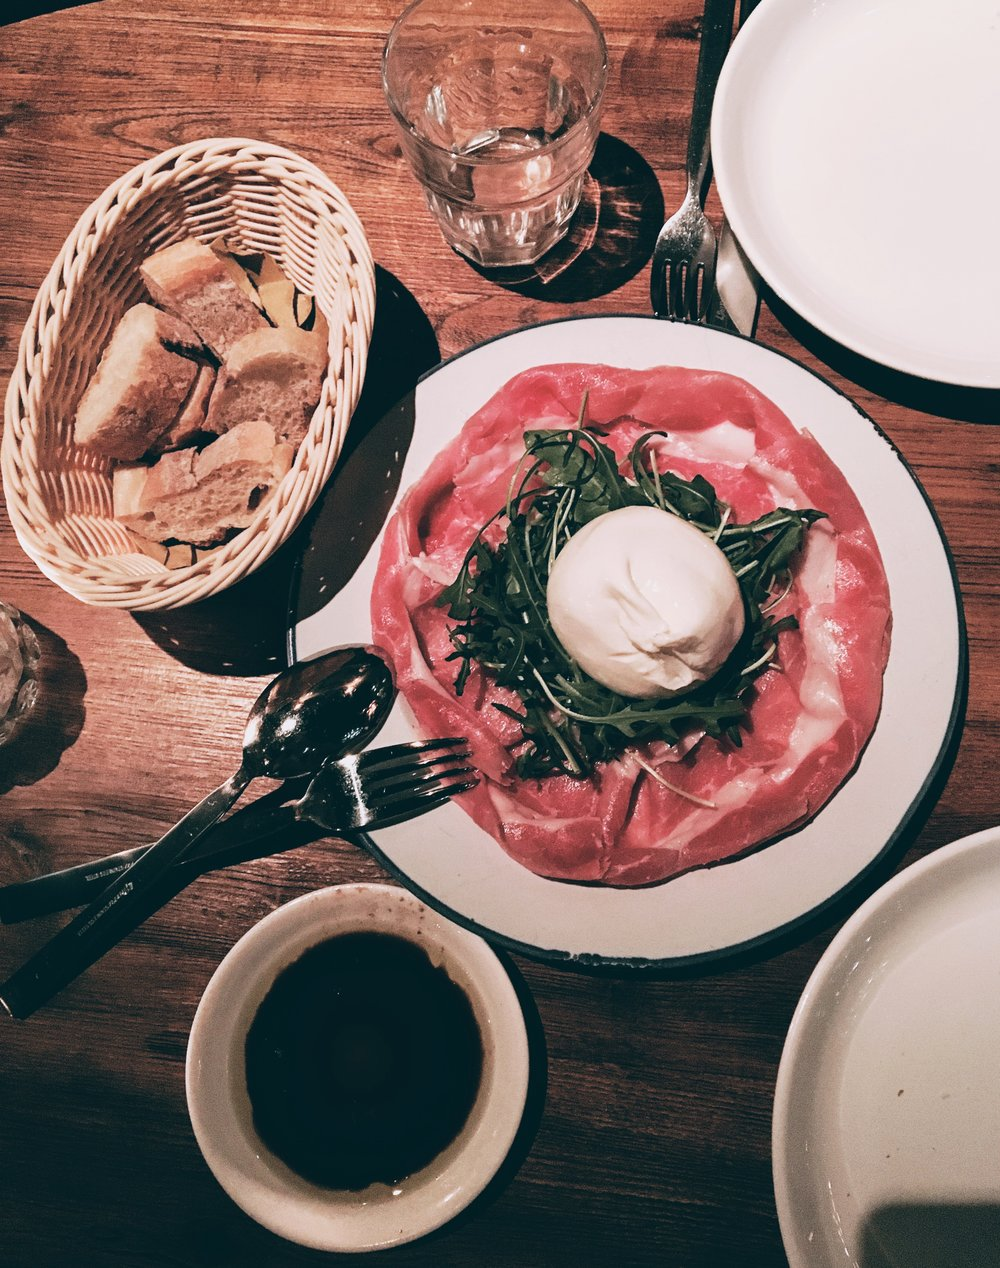 Italian Burratta and Parma Ham at Pirata, Wanchai